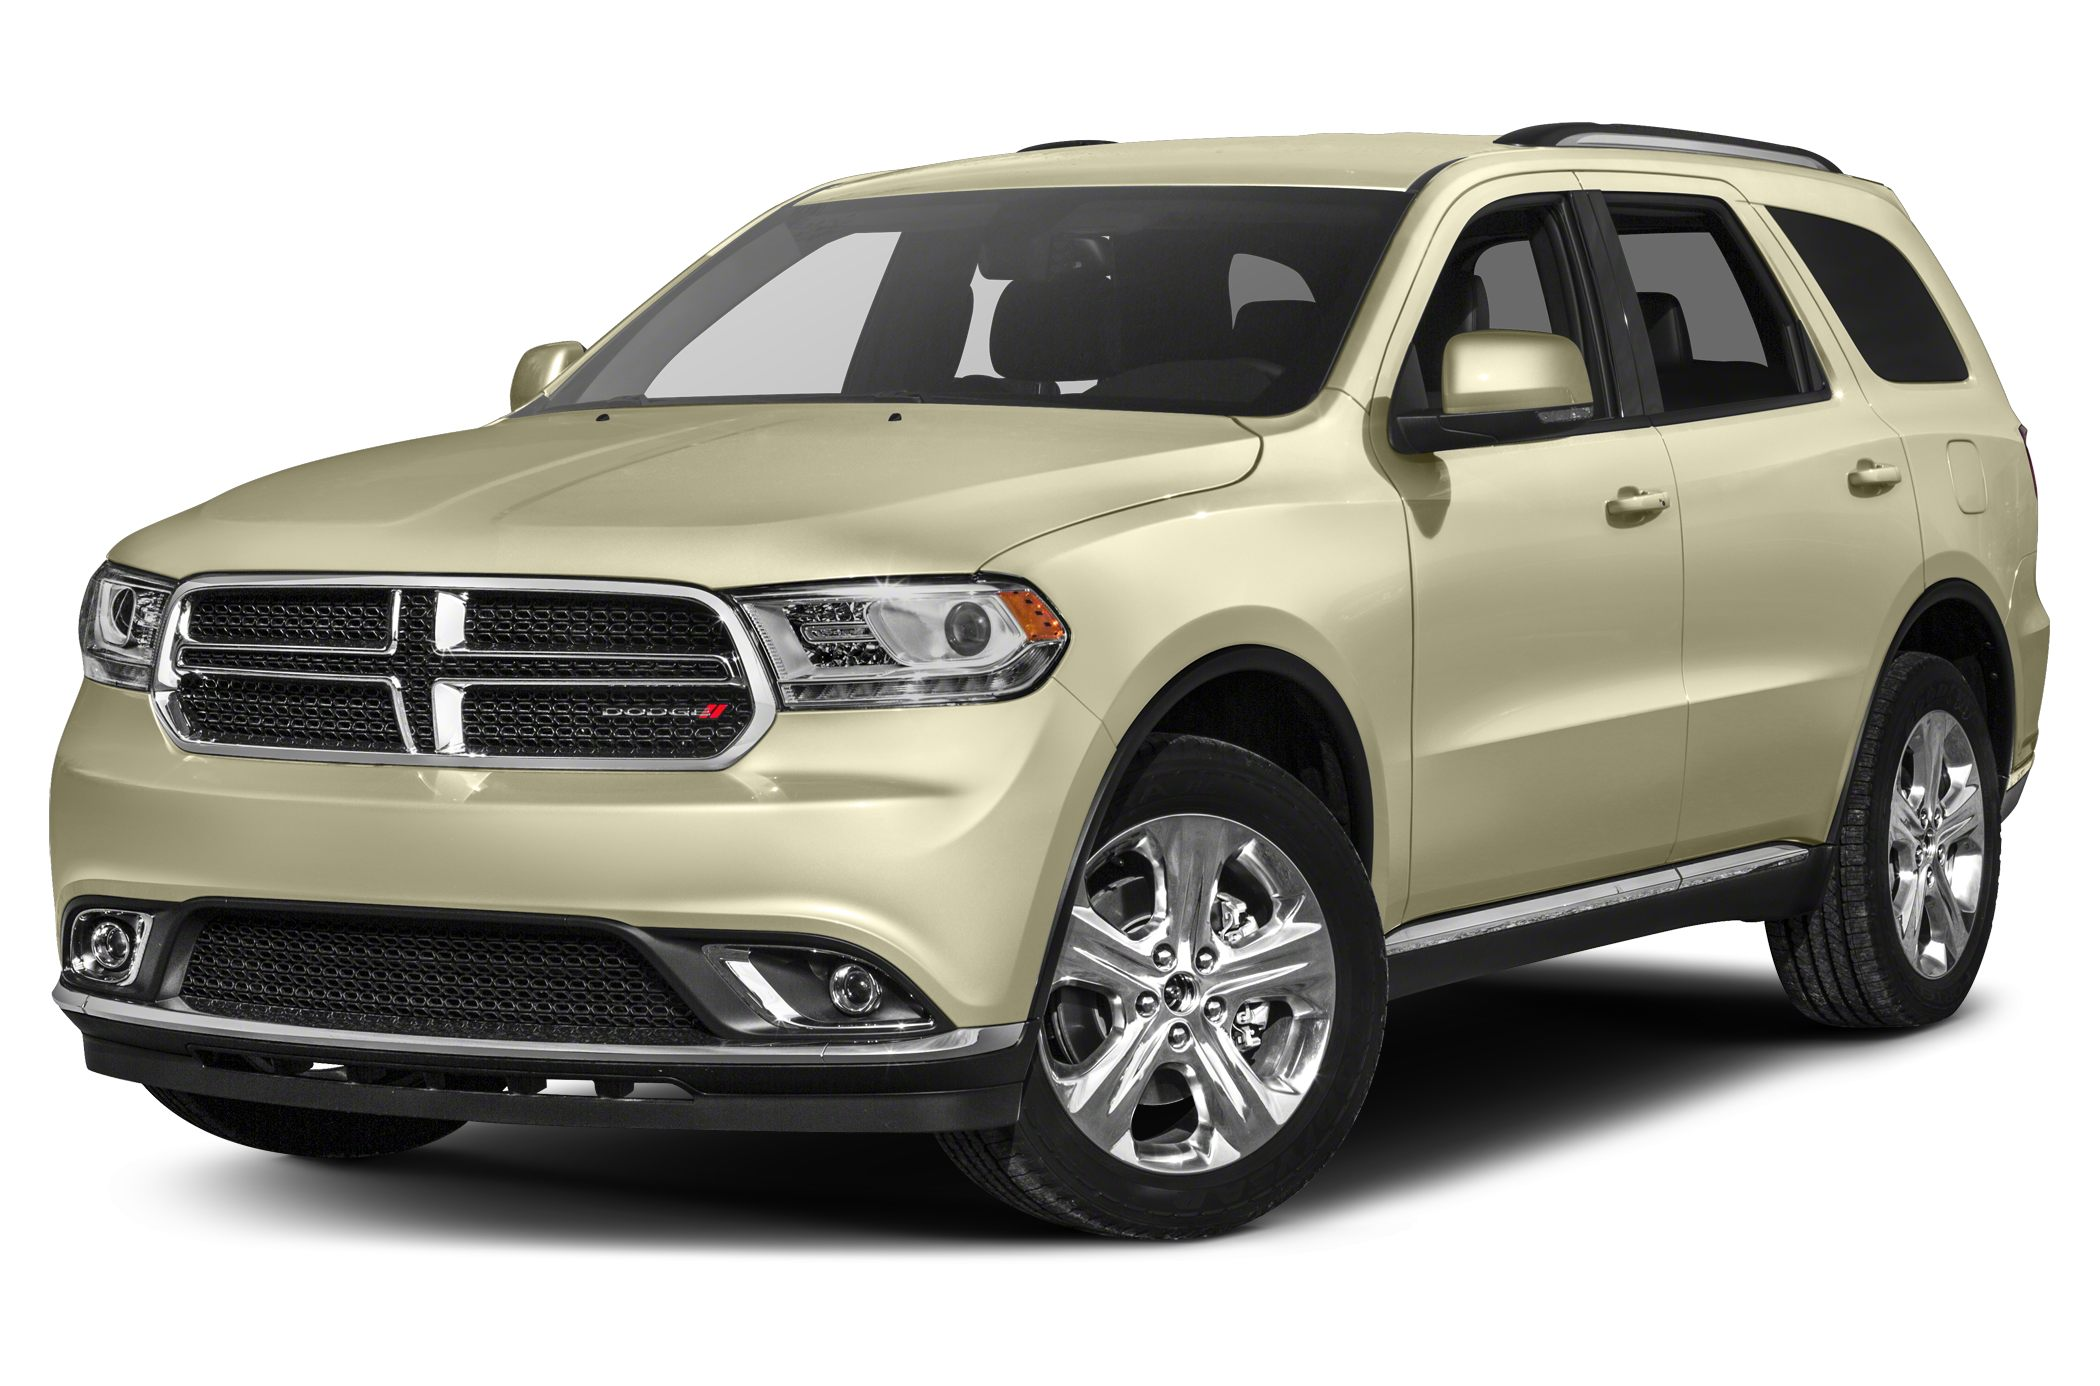 2014 Dodge Durango Citadel SUV for sale in Tacoma for $50,970 with 12 miles.